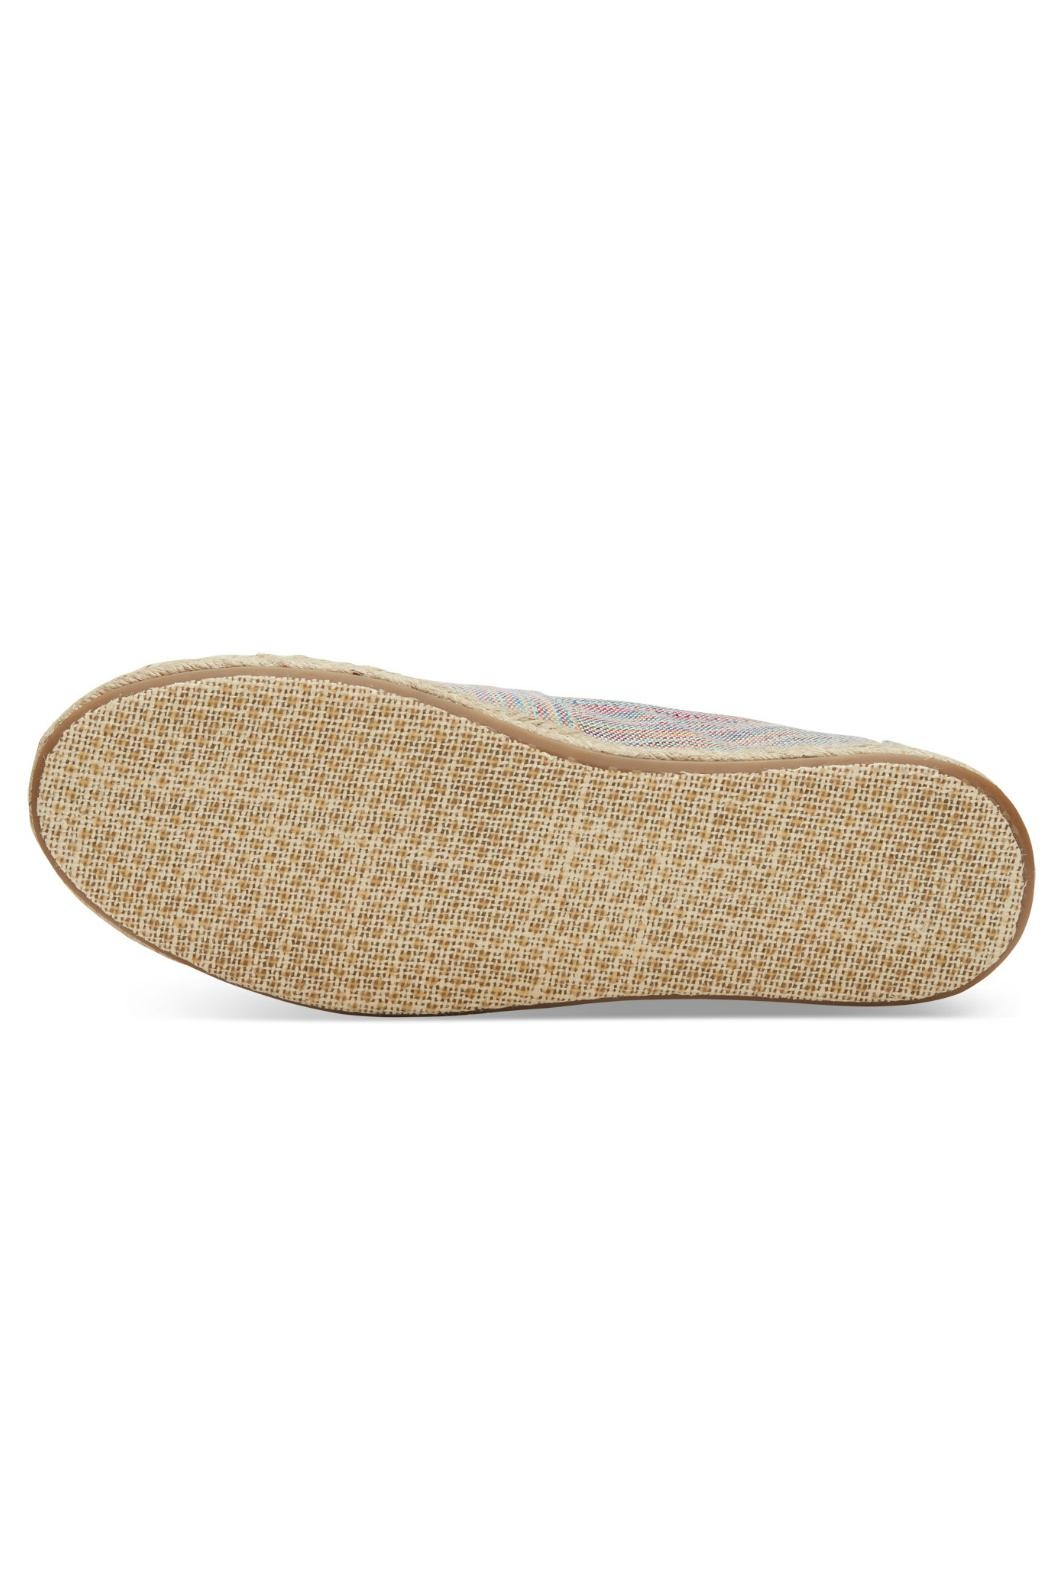 TOMS Rainbow Espadrille Shoes - Side Cropped Image